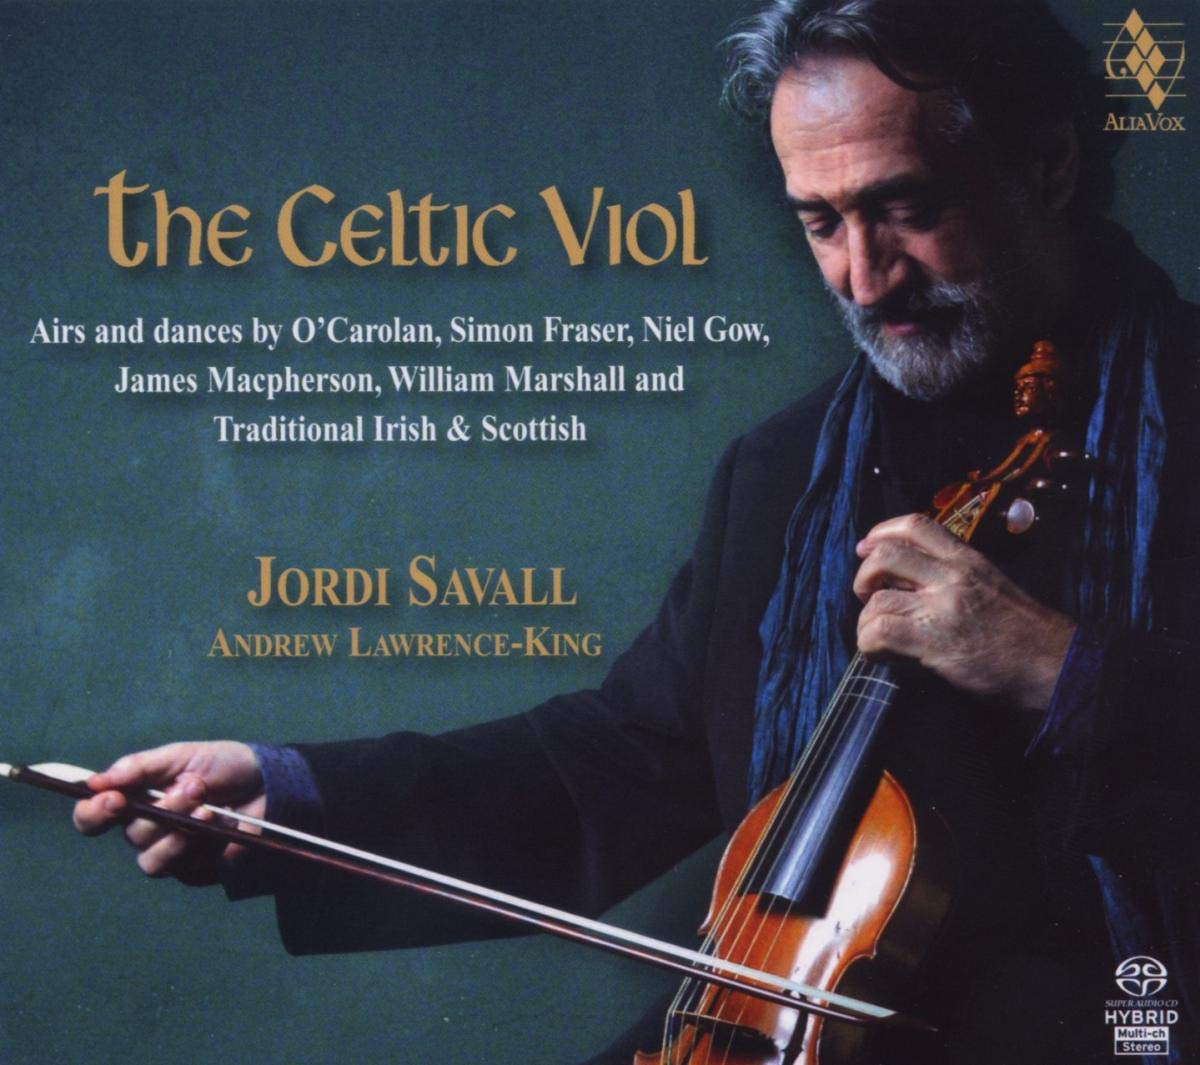 The Celtic Viol by Briggs